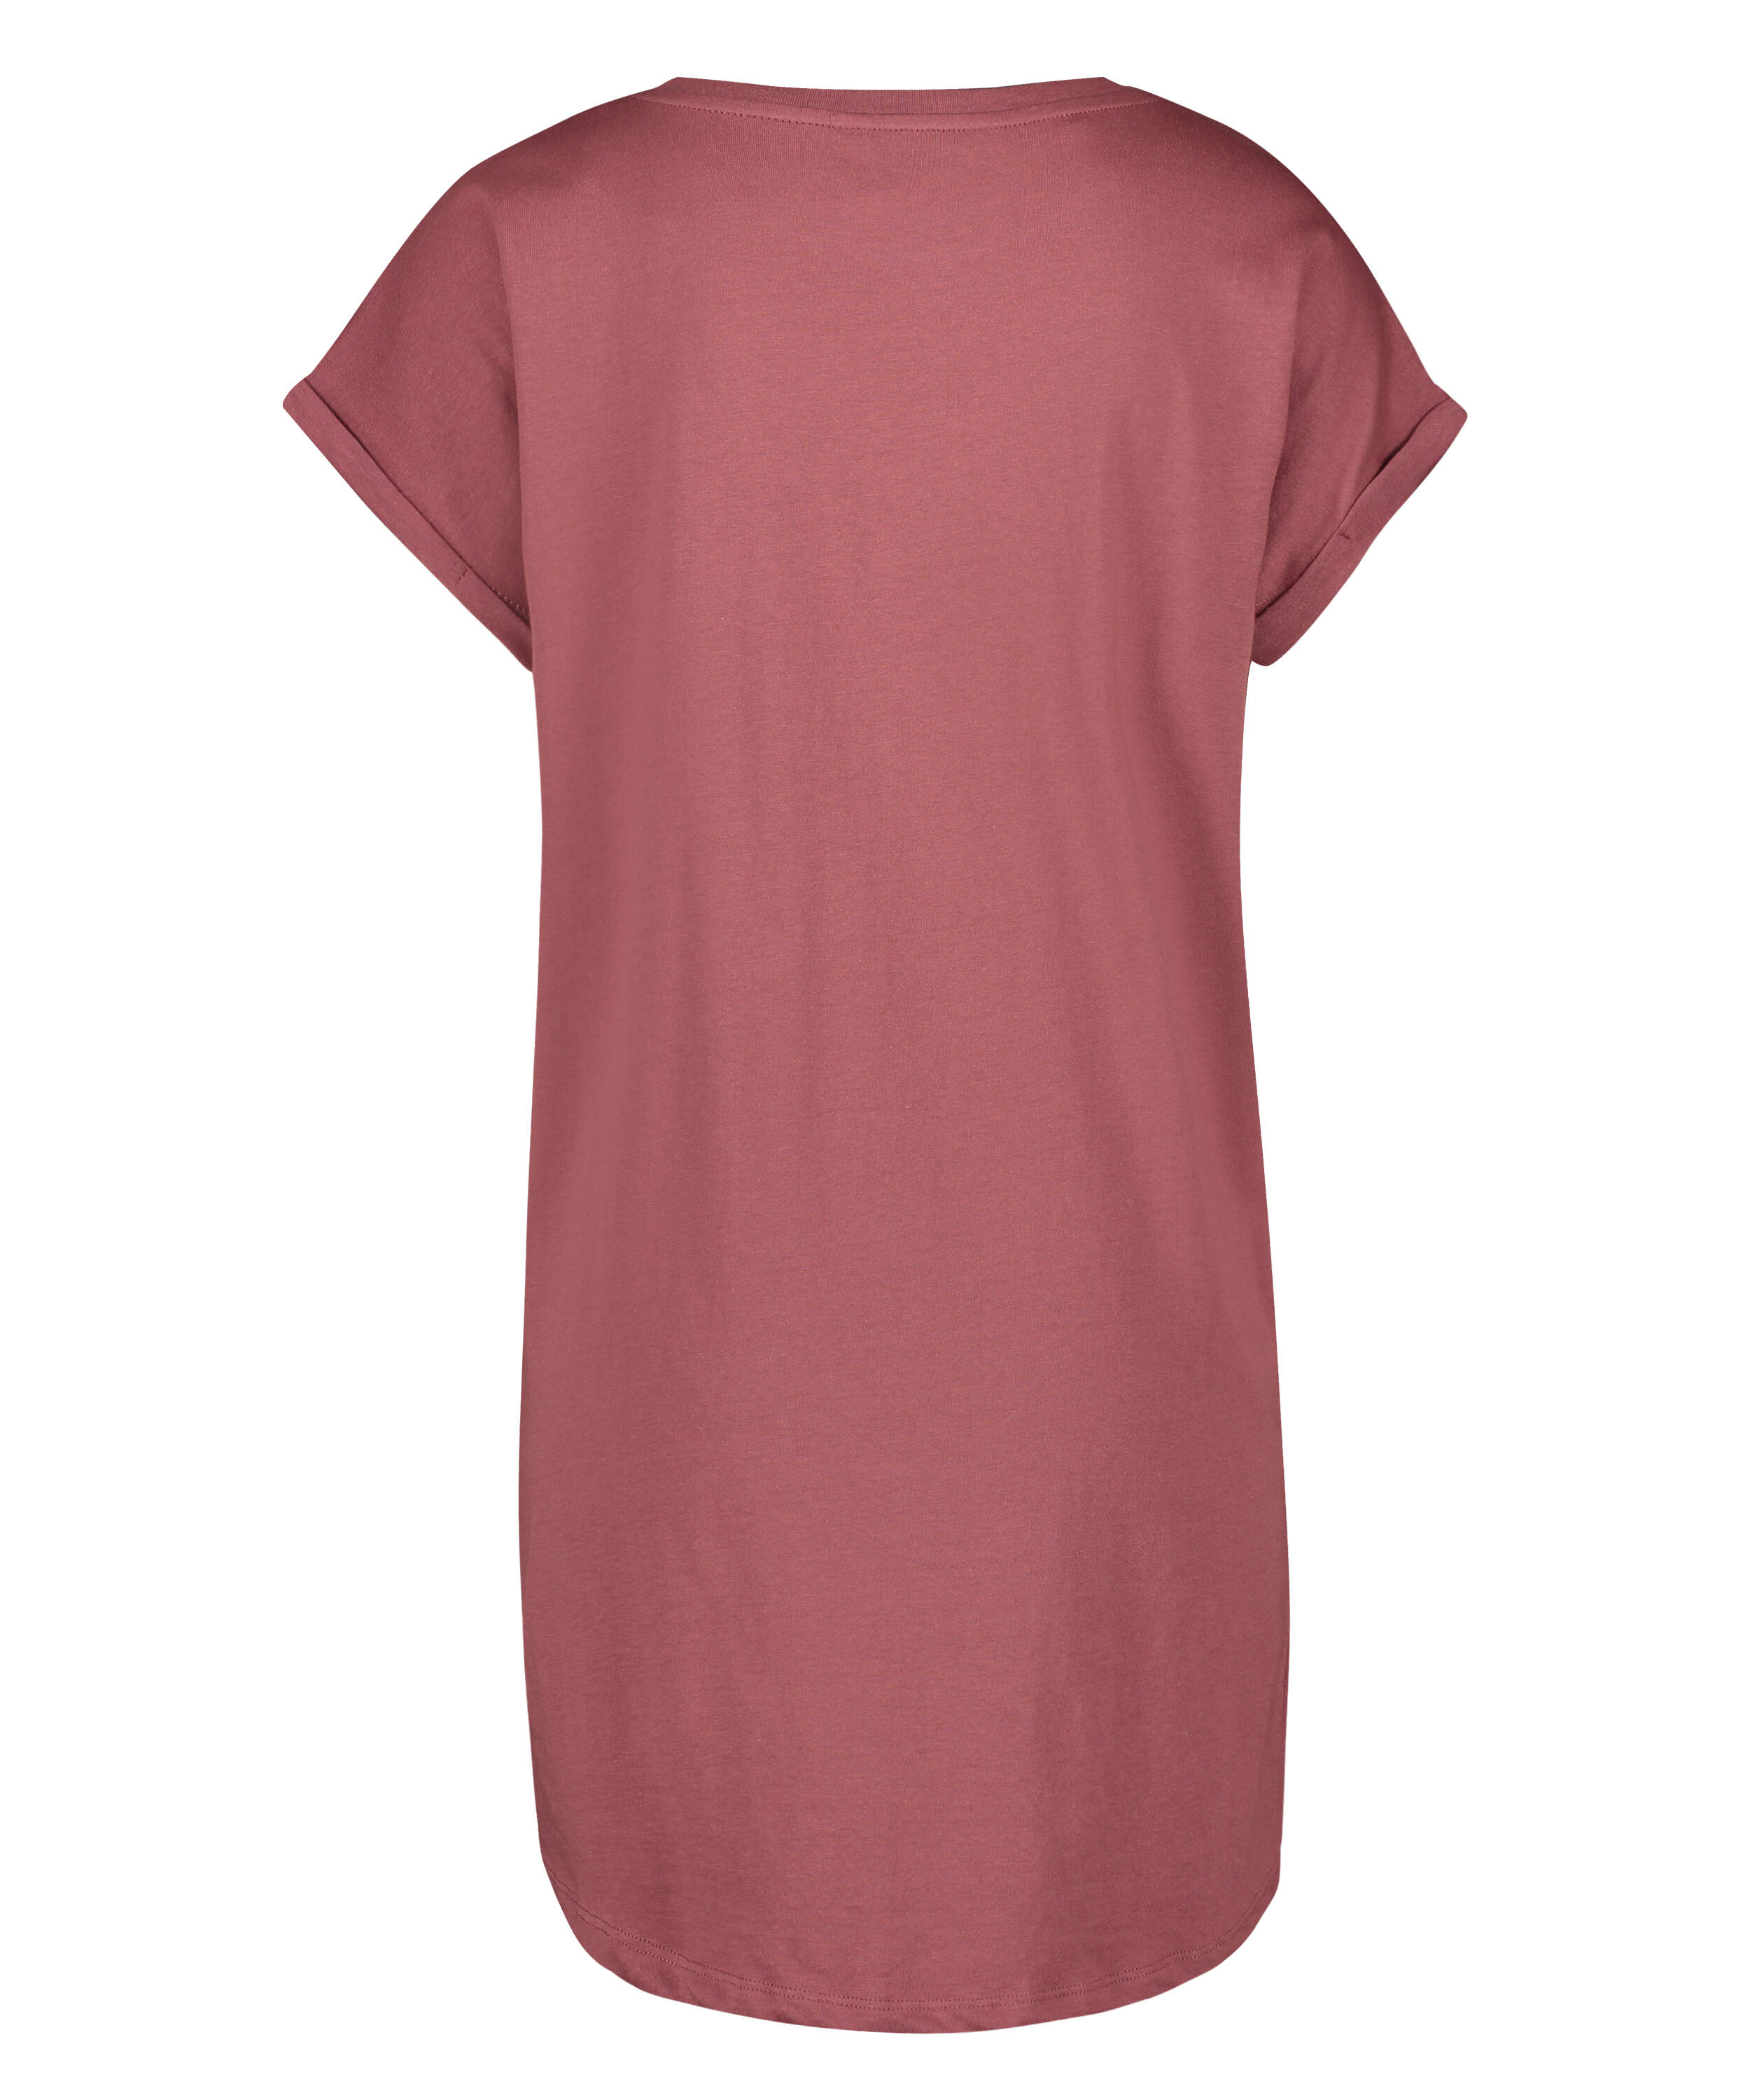 Round Neck Nightshirt, Pink, main